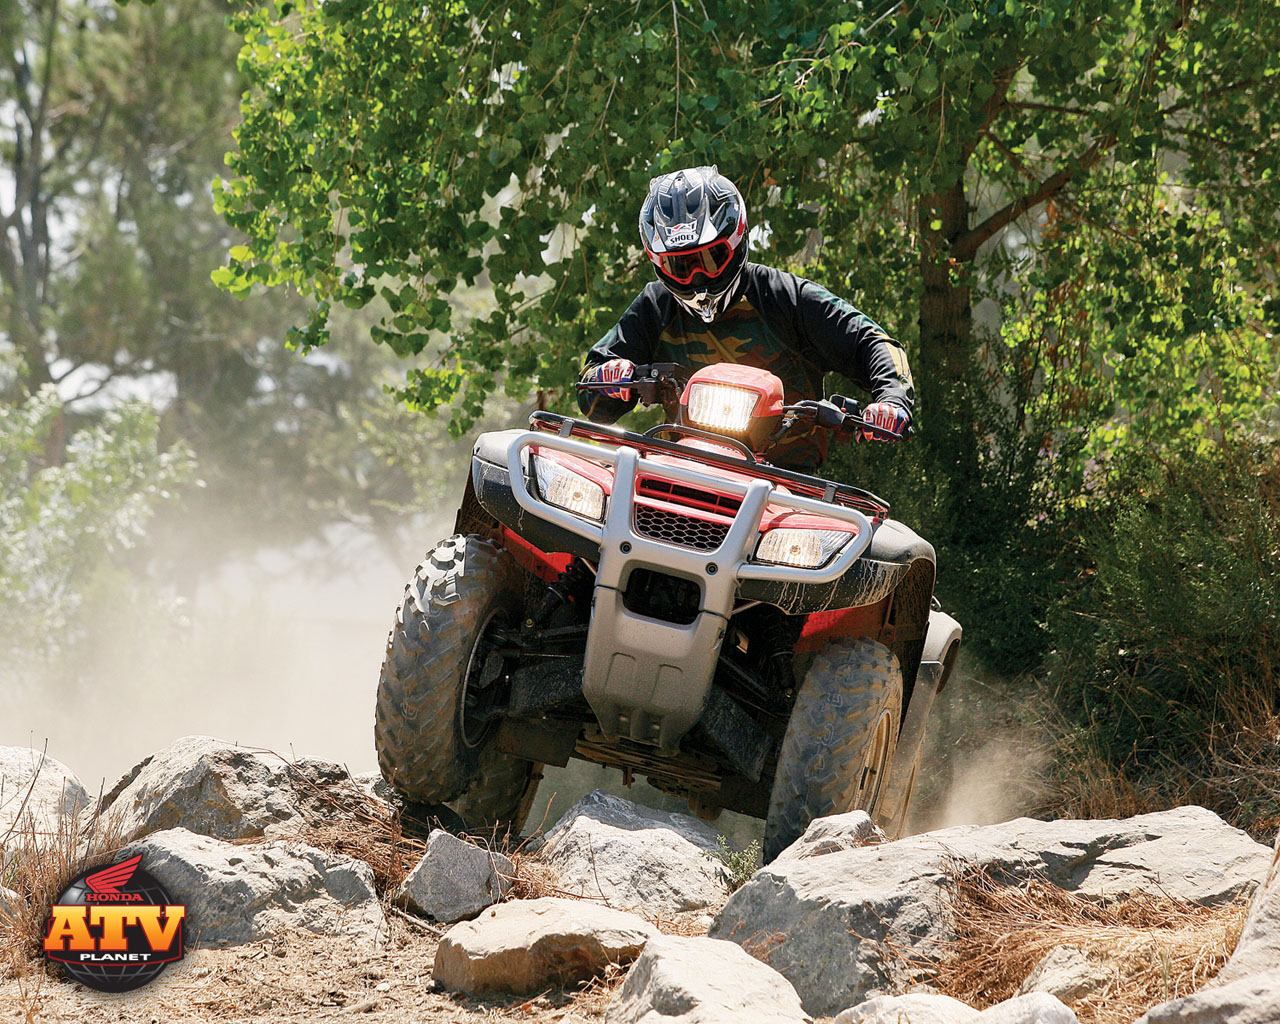 ATV Media Pictures Videos Sound Clips All Honda ATV Media 1280x1024